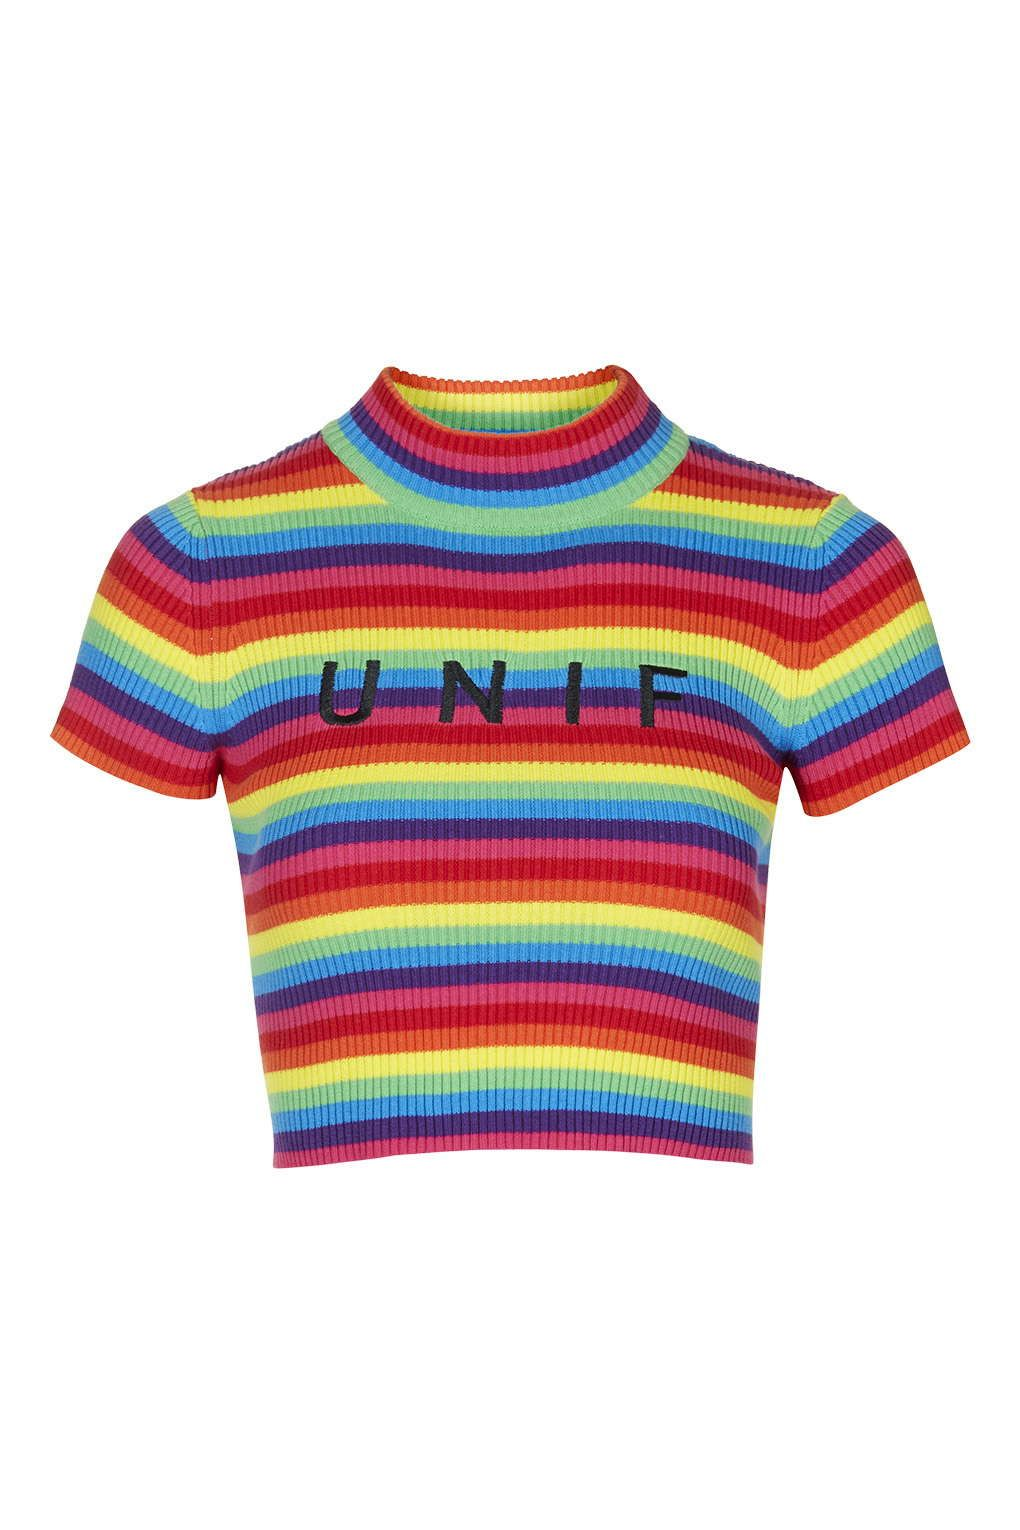 9115f91a3cb564 Logo Rainbow Tee by UNIF - Topshop